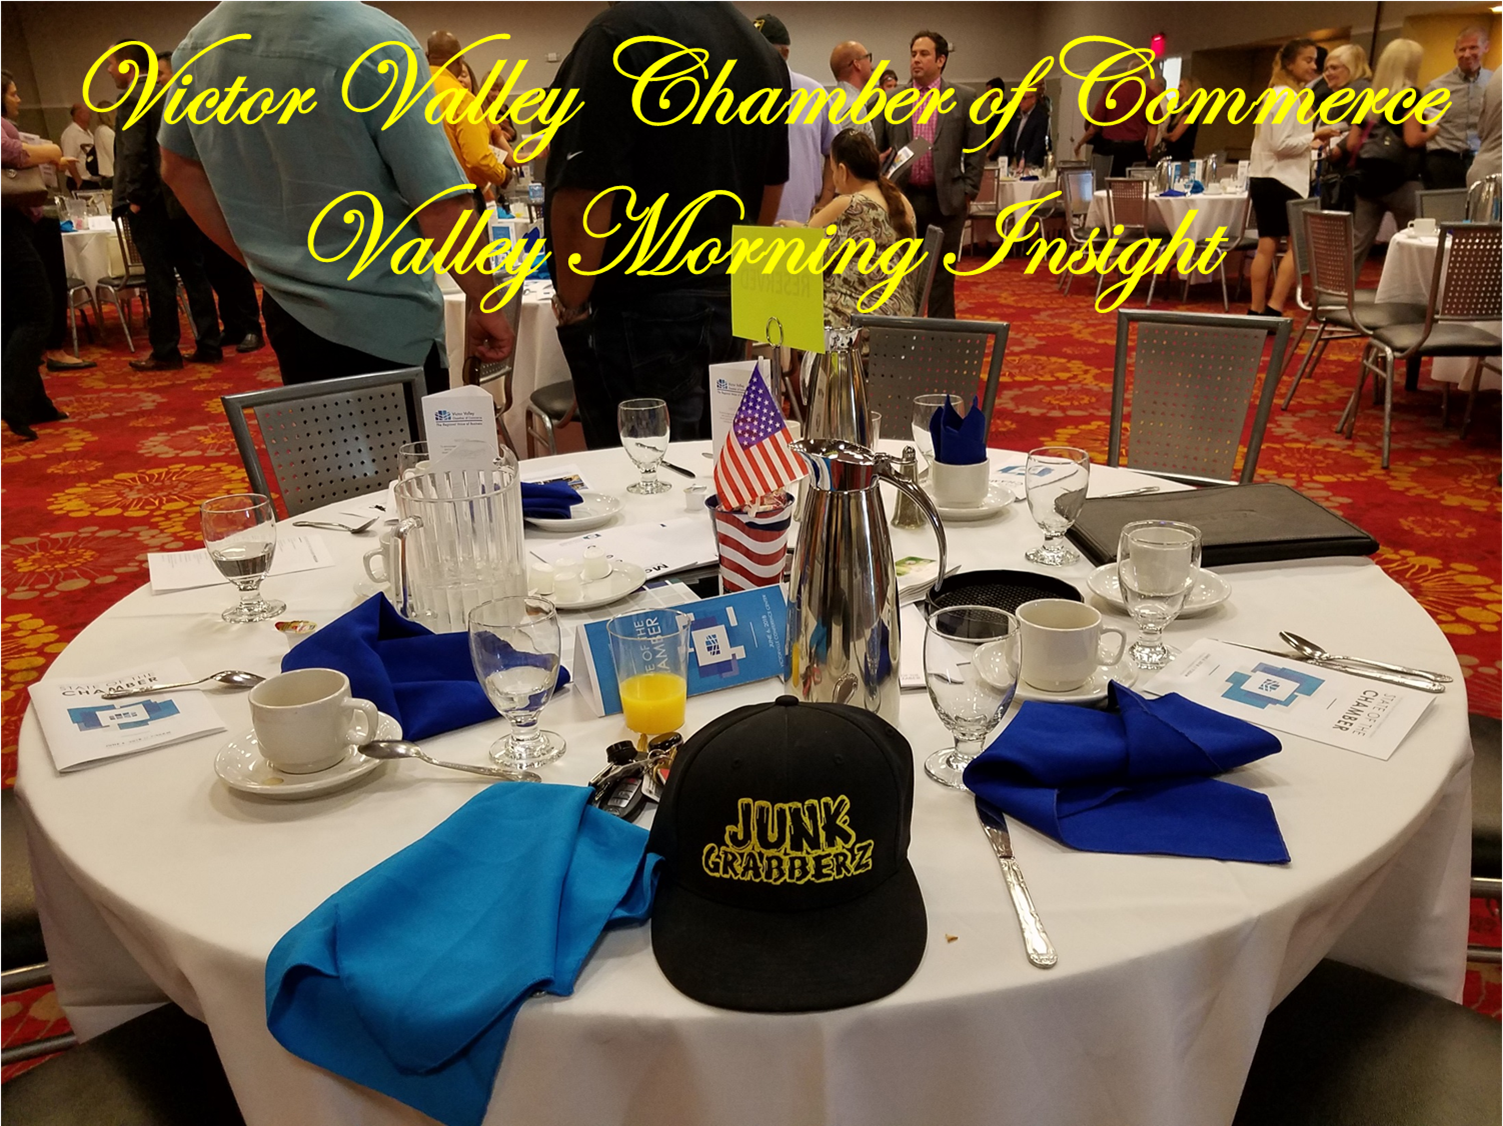 Victor Valley Chamber of Commerce 06-06-18.png